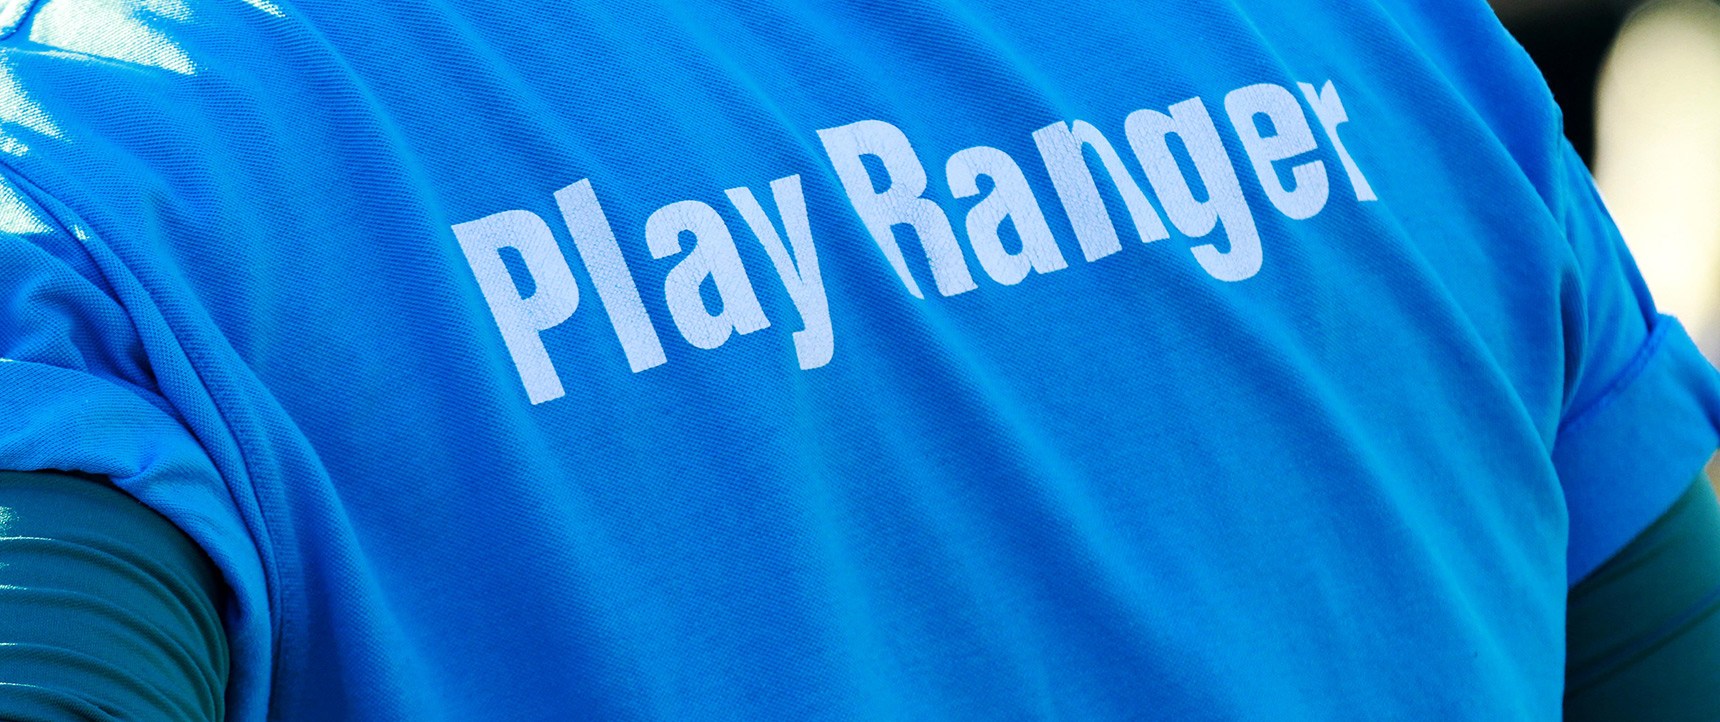 Community play rangers | Play Gloucestershire